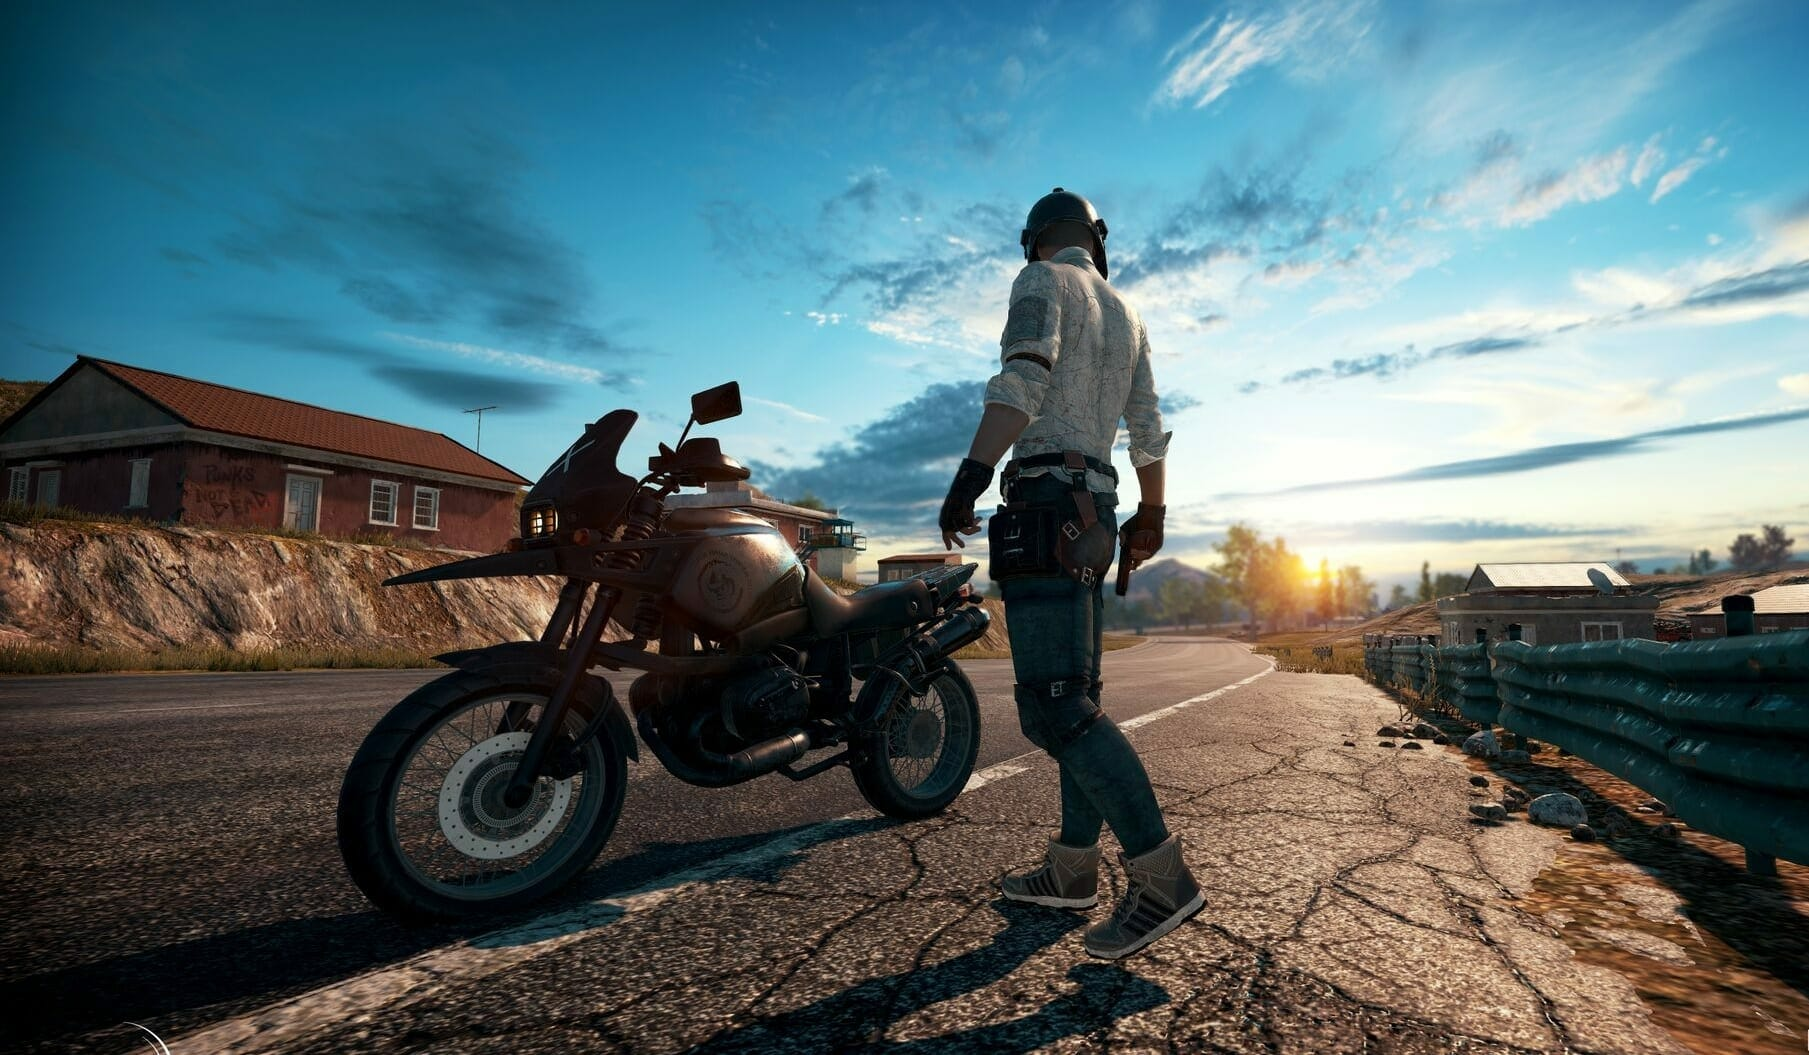 Map Planepath For Pubg 1 6 1 Apk: Download PUBG Mobile 0.6.1 Chinese APK For Android Phones